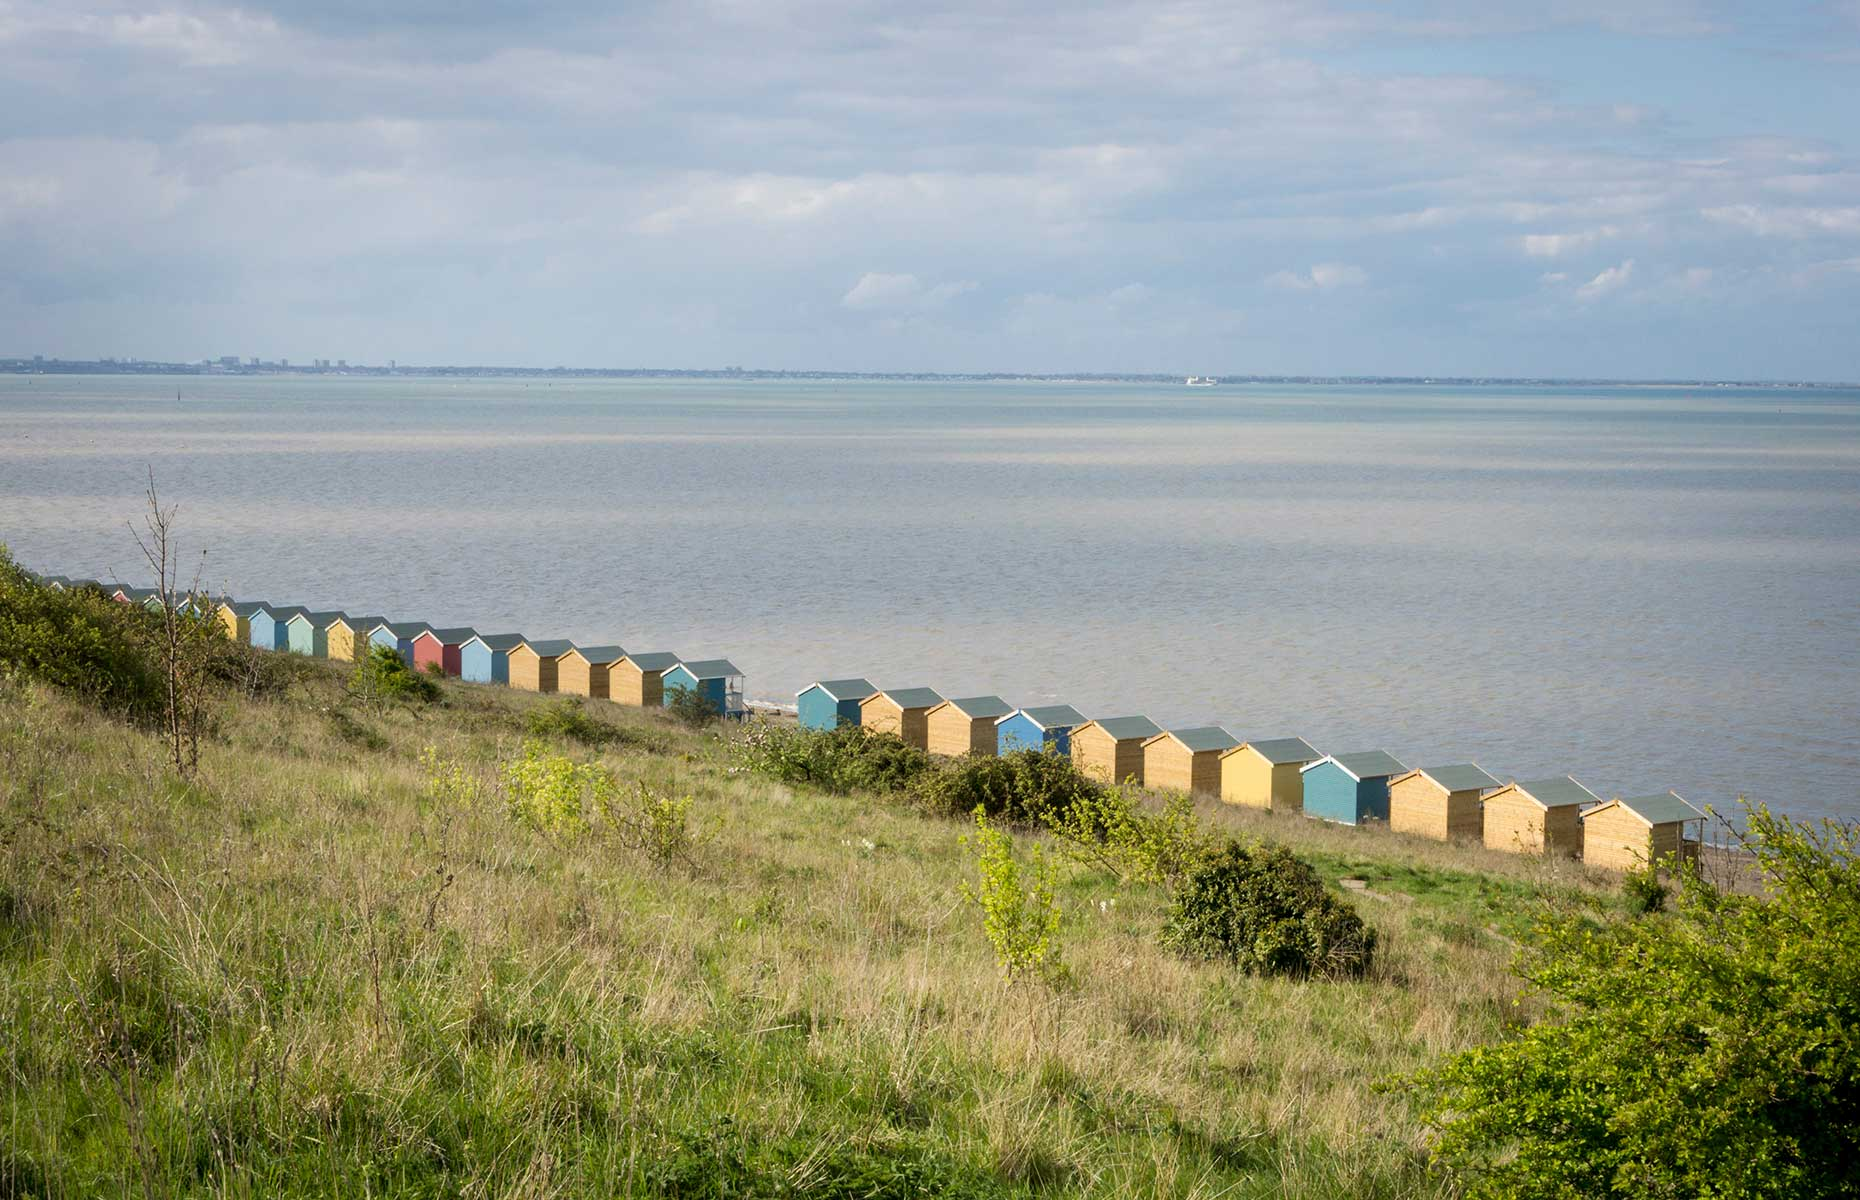 Beach huts on the Isle of Sheppey, Kent (Image: Sue Martin/Shutterstock)